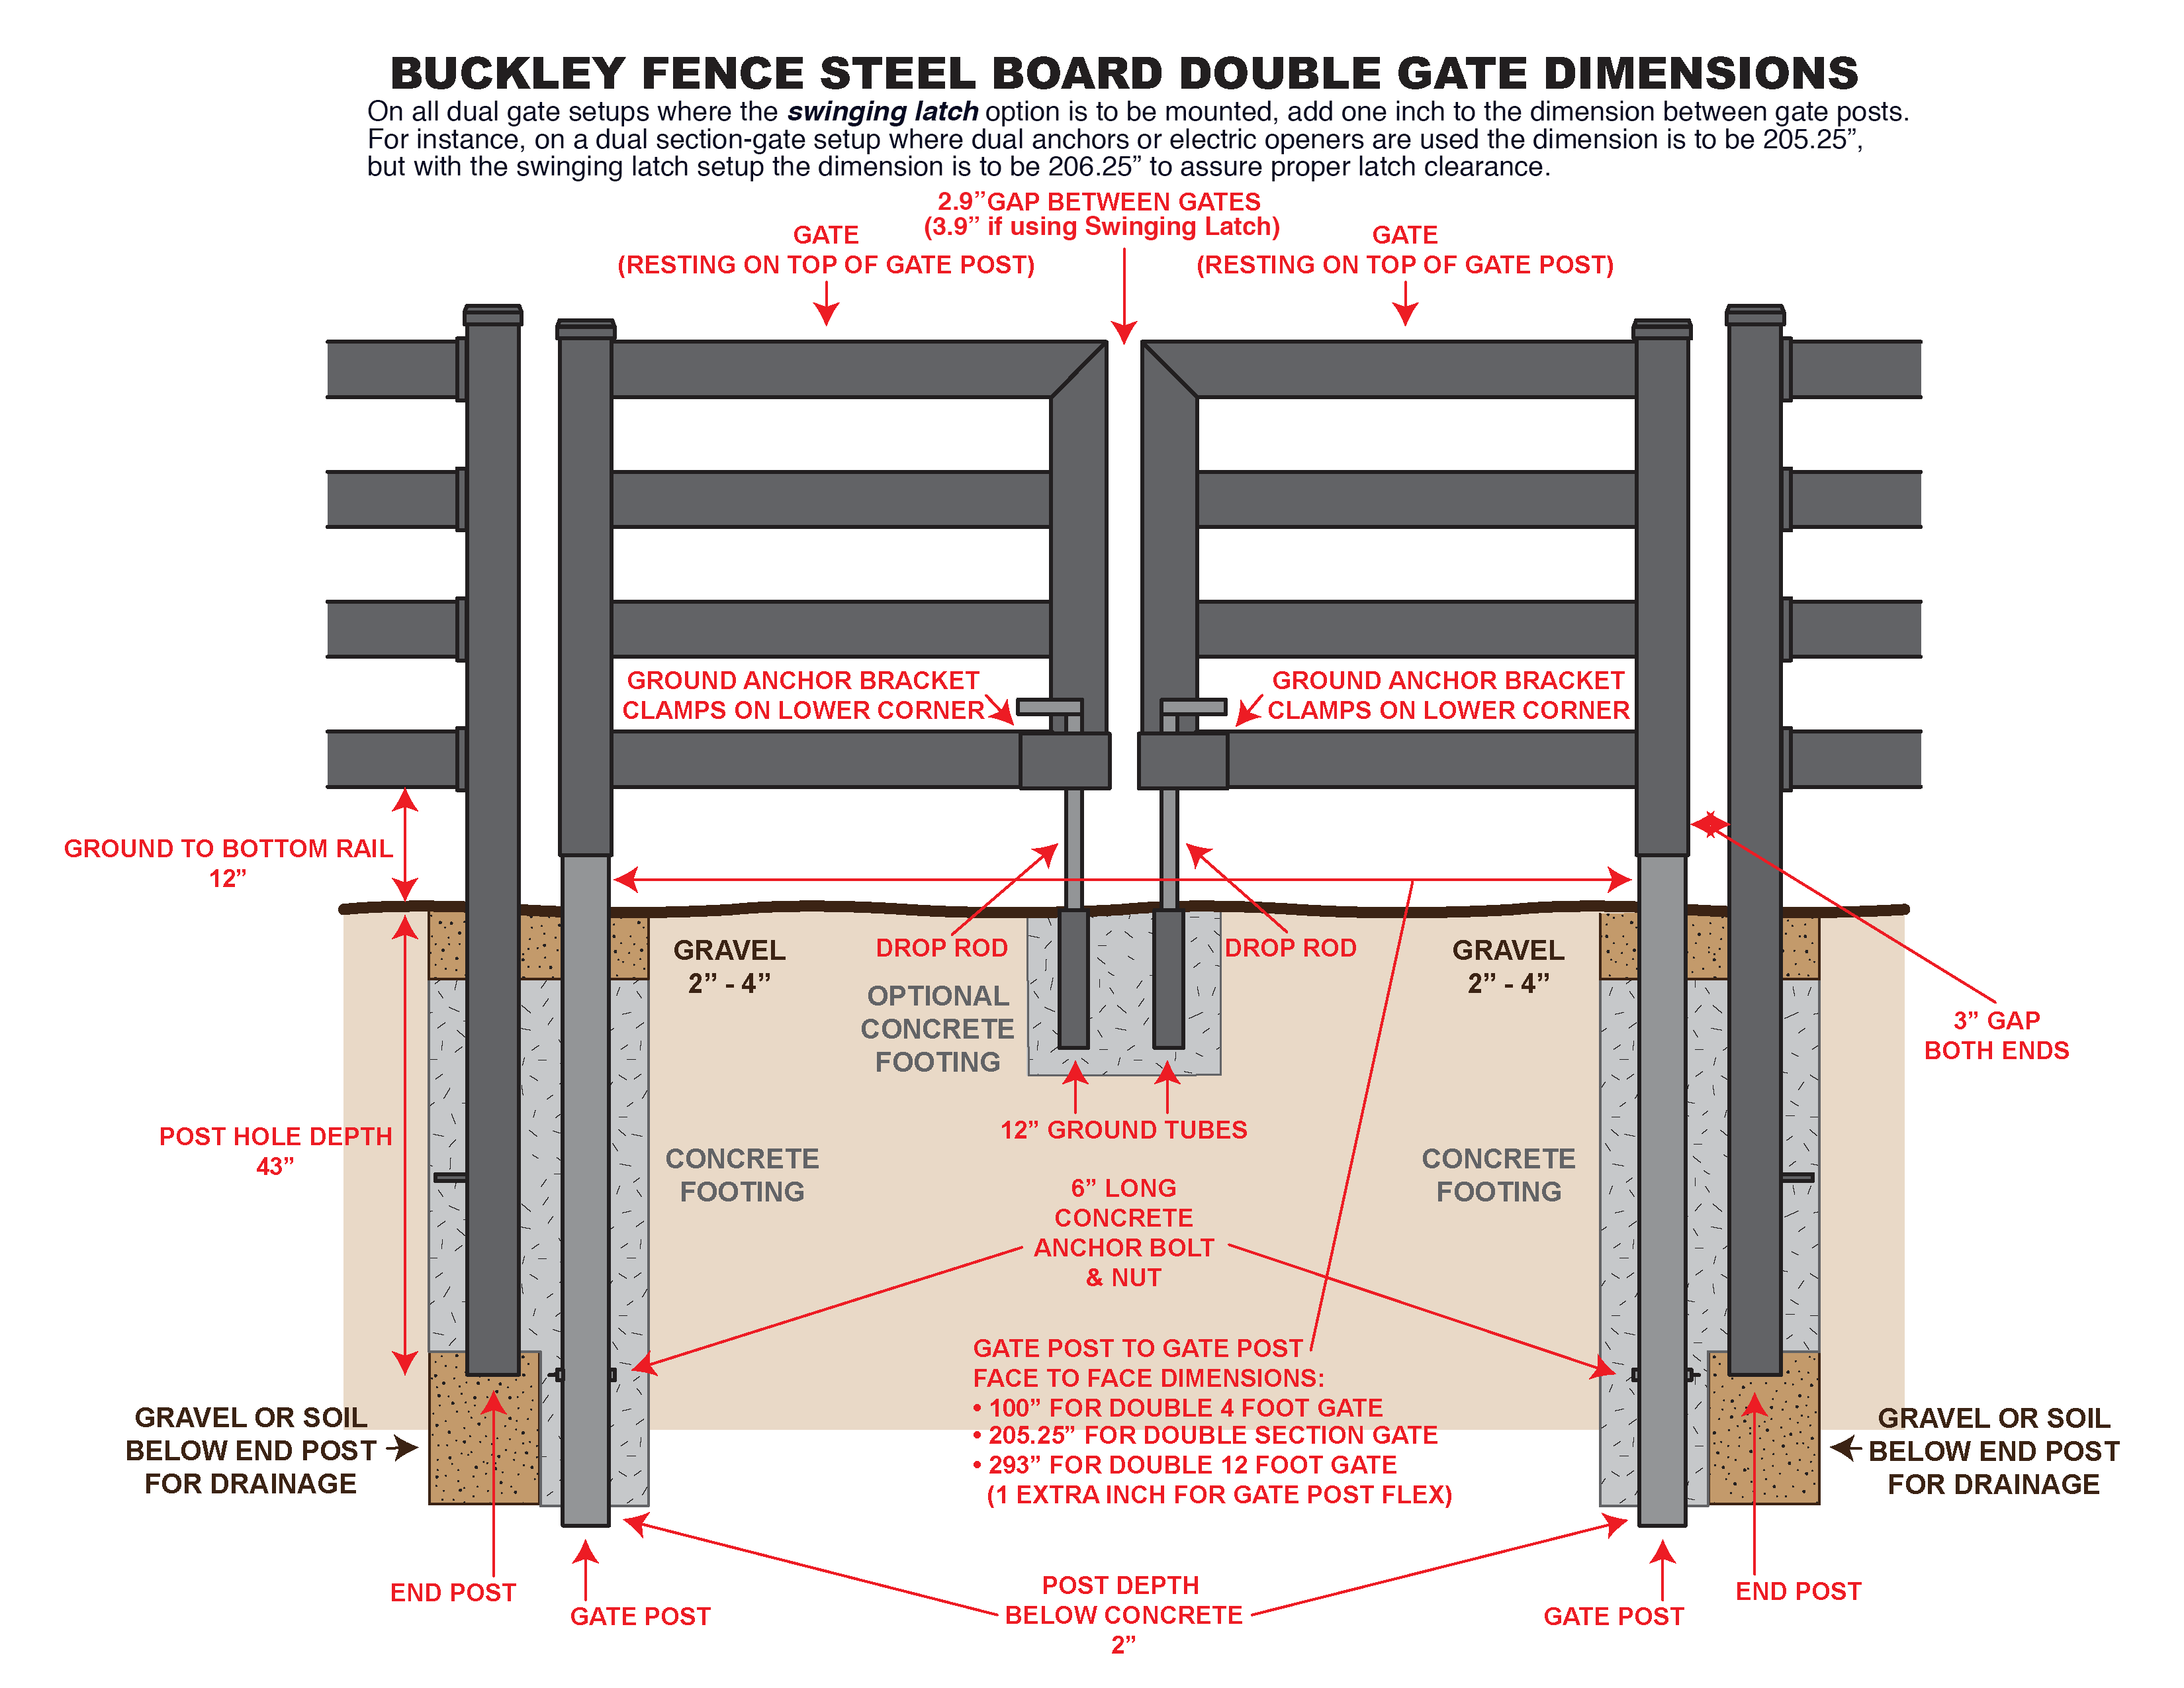 What Are The Dimensions Of The Steel Board Fence Components